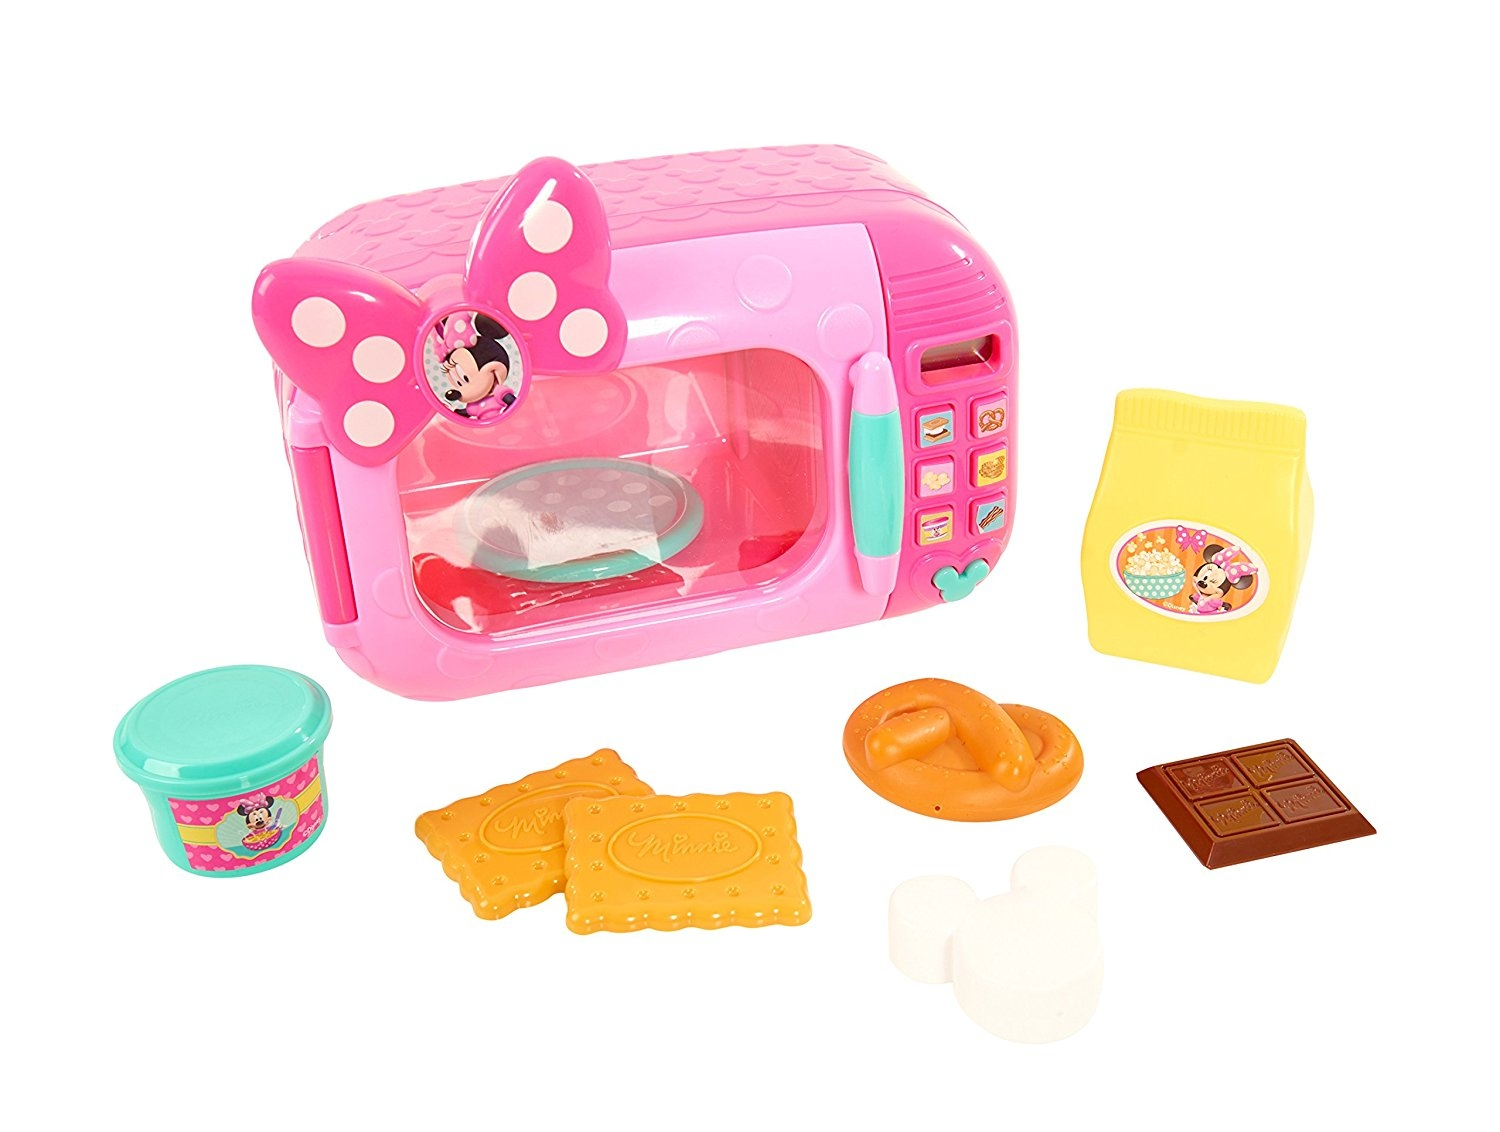 Jusub Disney Minnie Bow-Tique Marvelous Microwave by Just Play